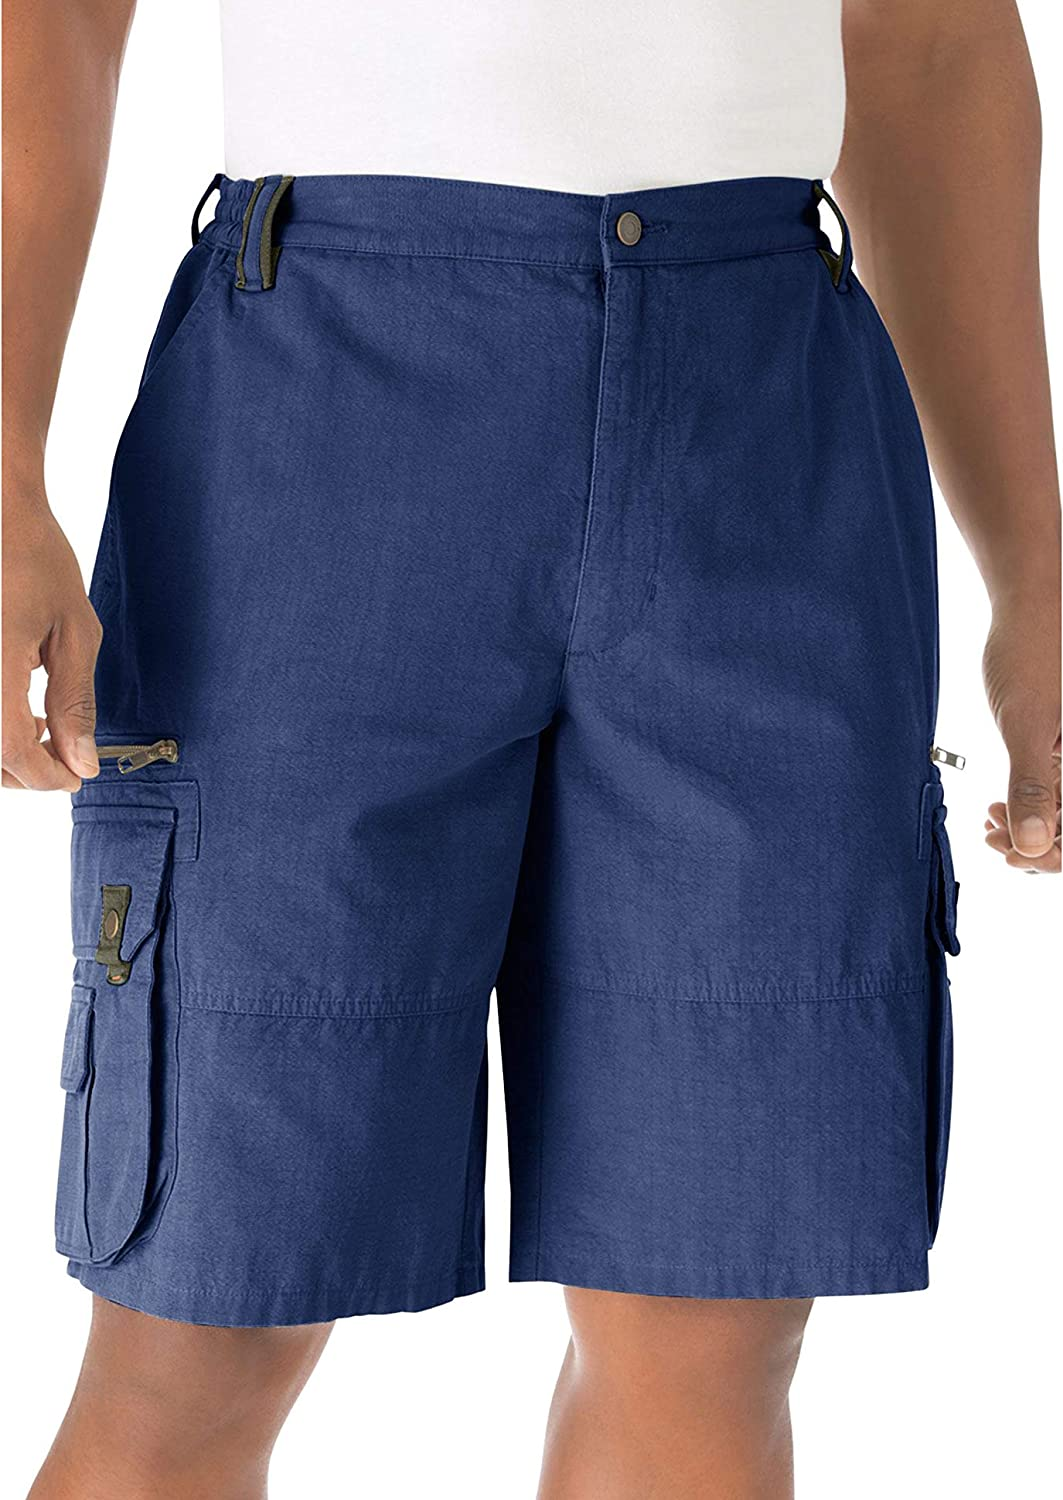 Boulder Creek by Max 78% OFF Kingsize Men's Ripstop Tall Cargo Shorts Translated Big